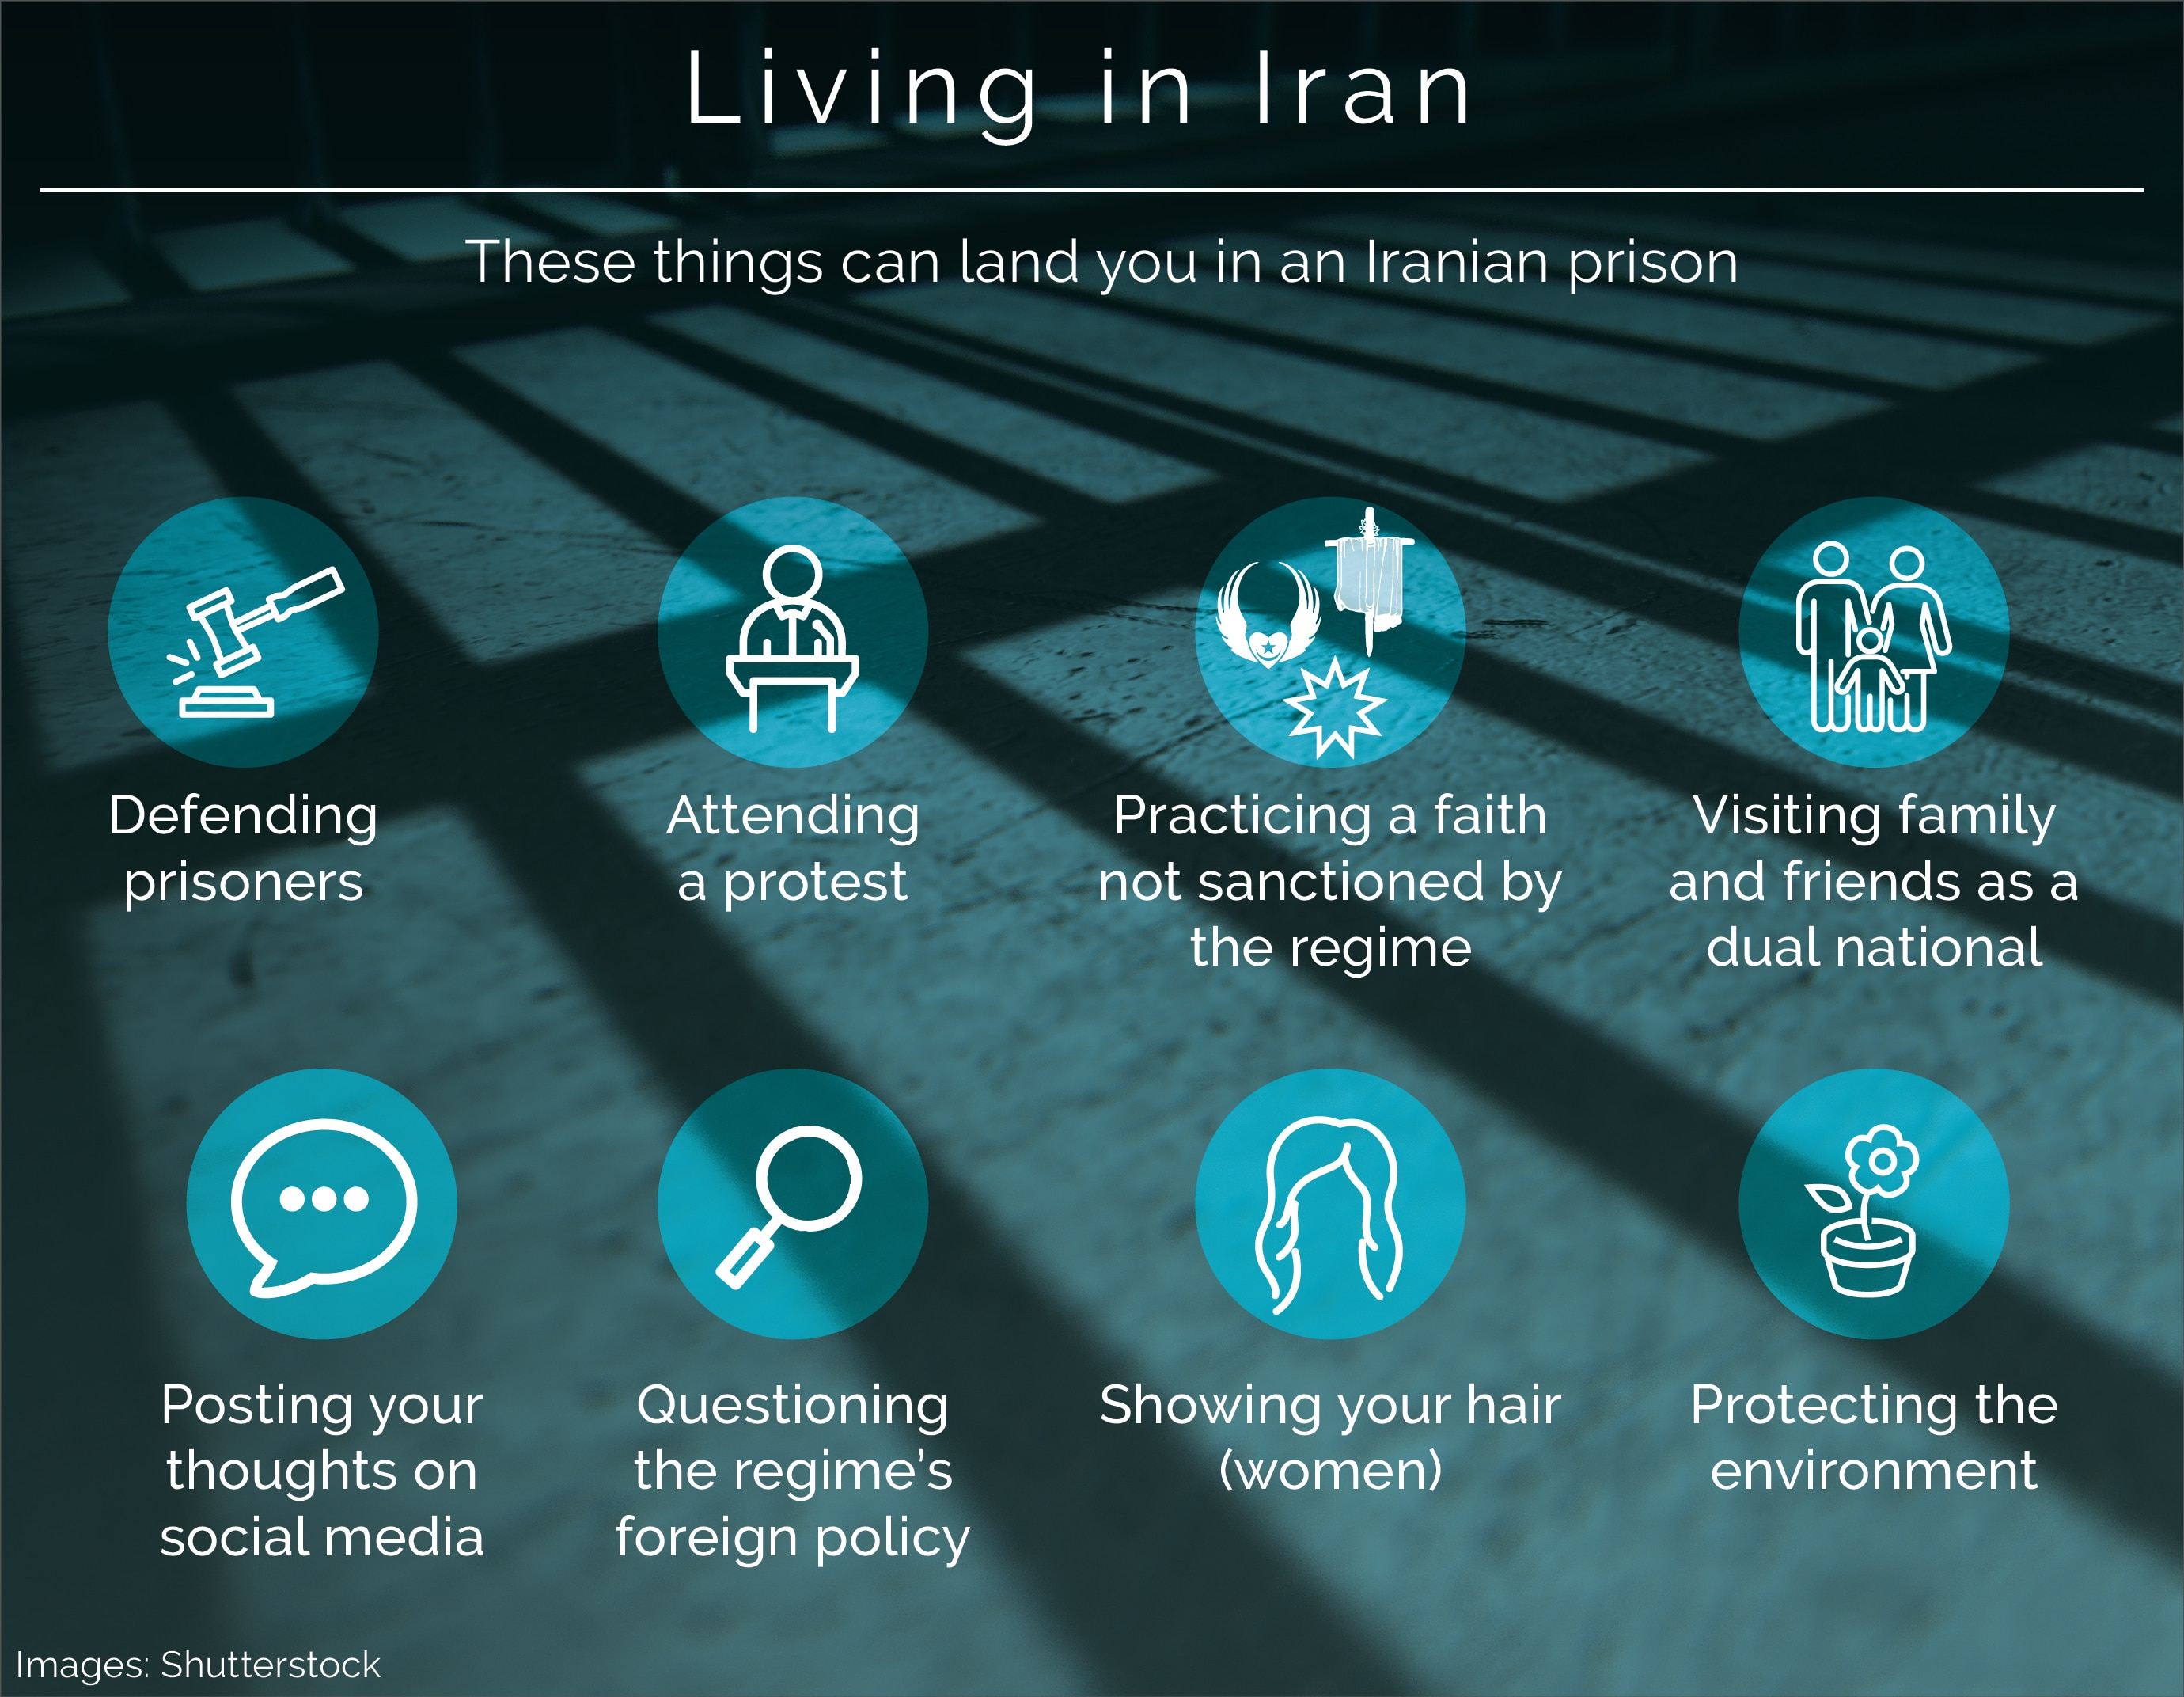 Chart showing things that can land you in an Iranian prison (State Dept.)